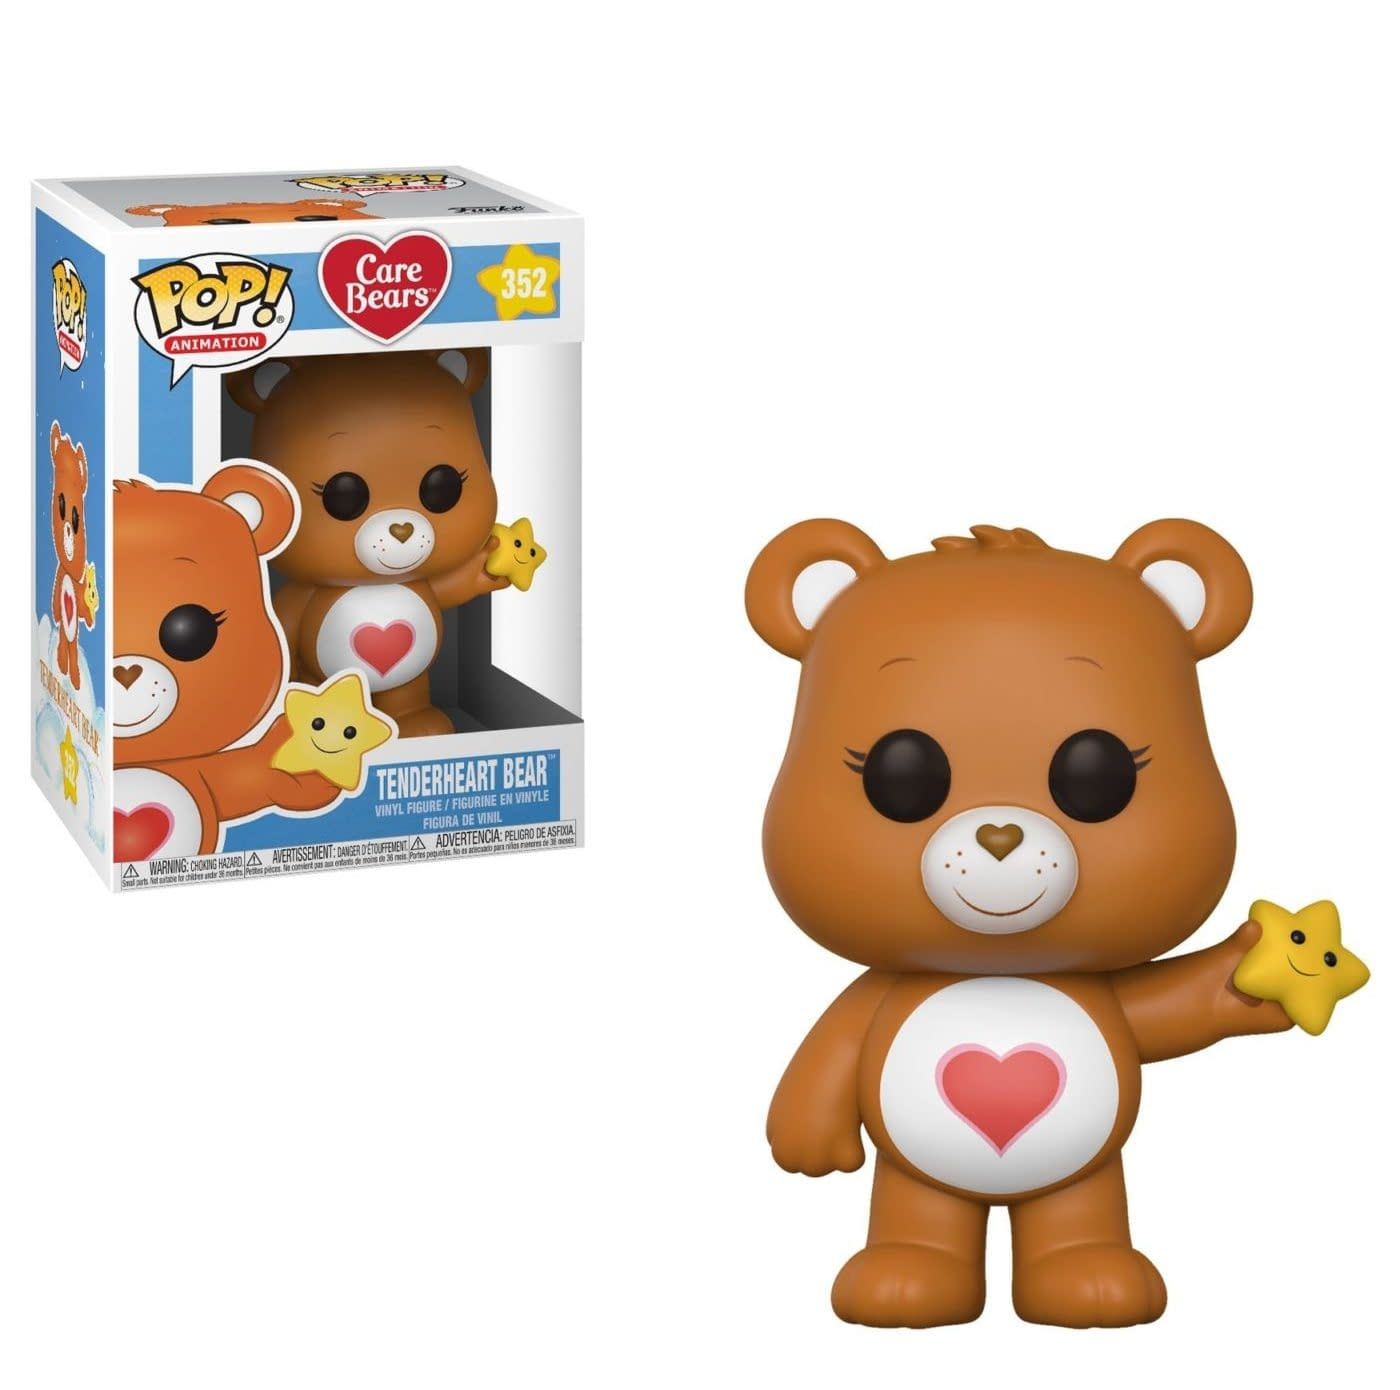 Getting ready for a geeky Valentine's Day? FUN.com has you covered!